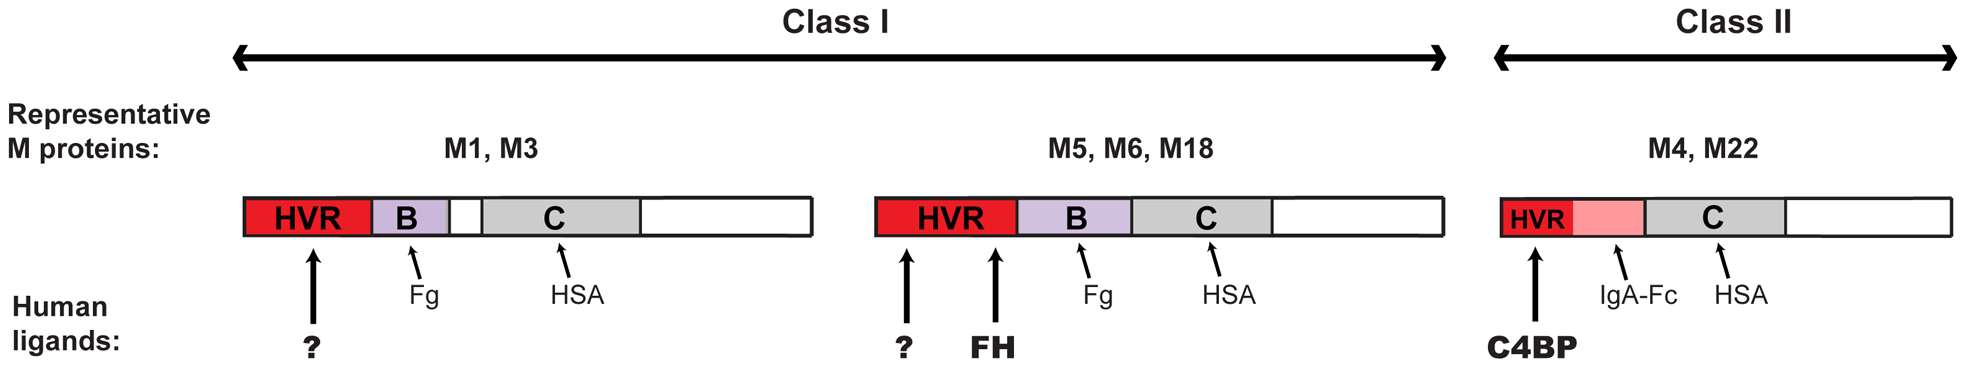 Binding of human proteins to M proteins, with focus on the HVR.